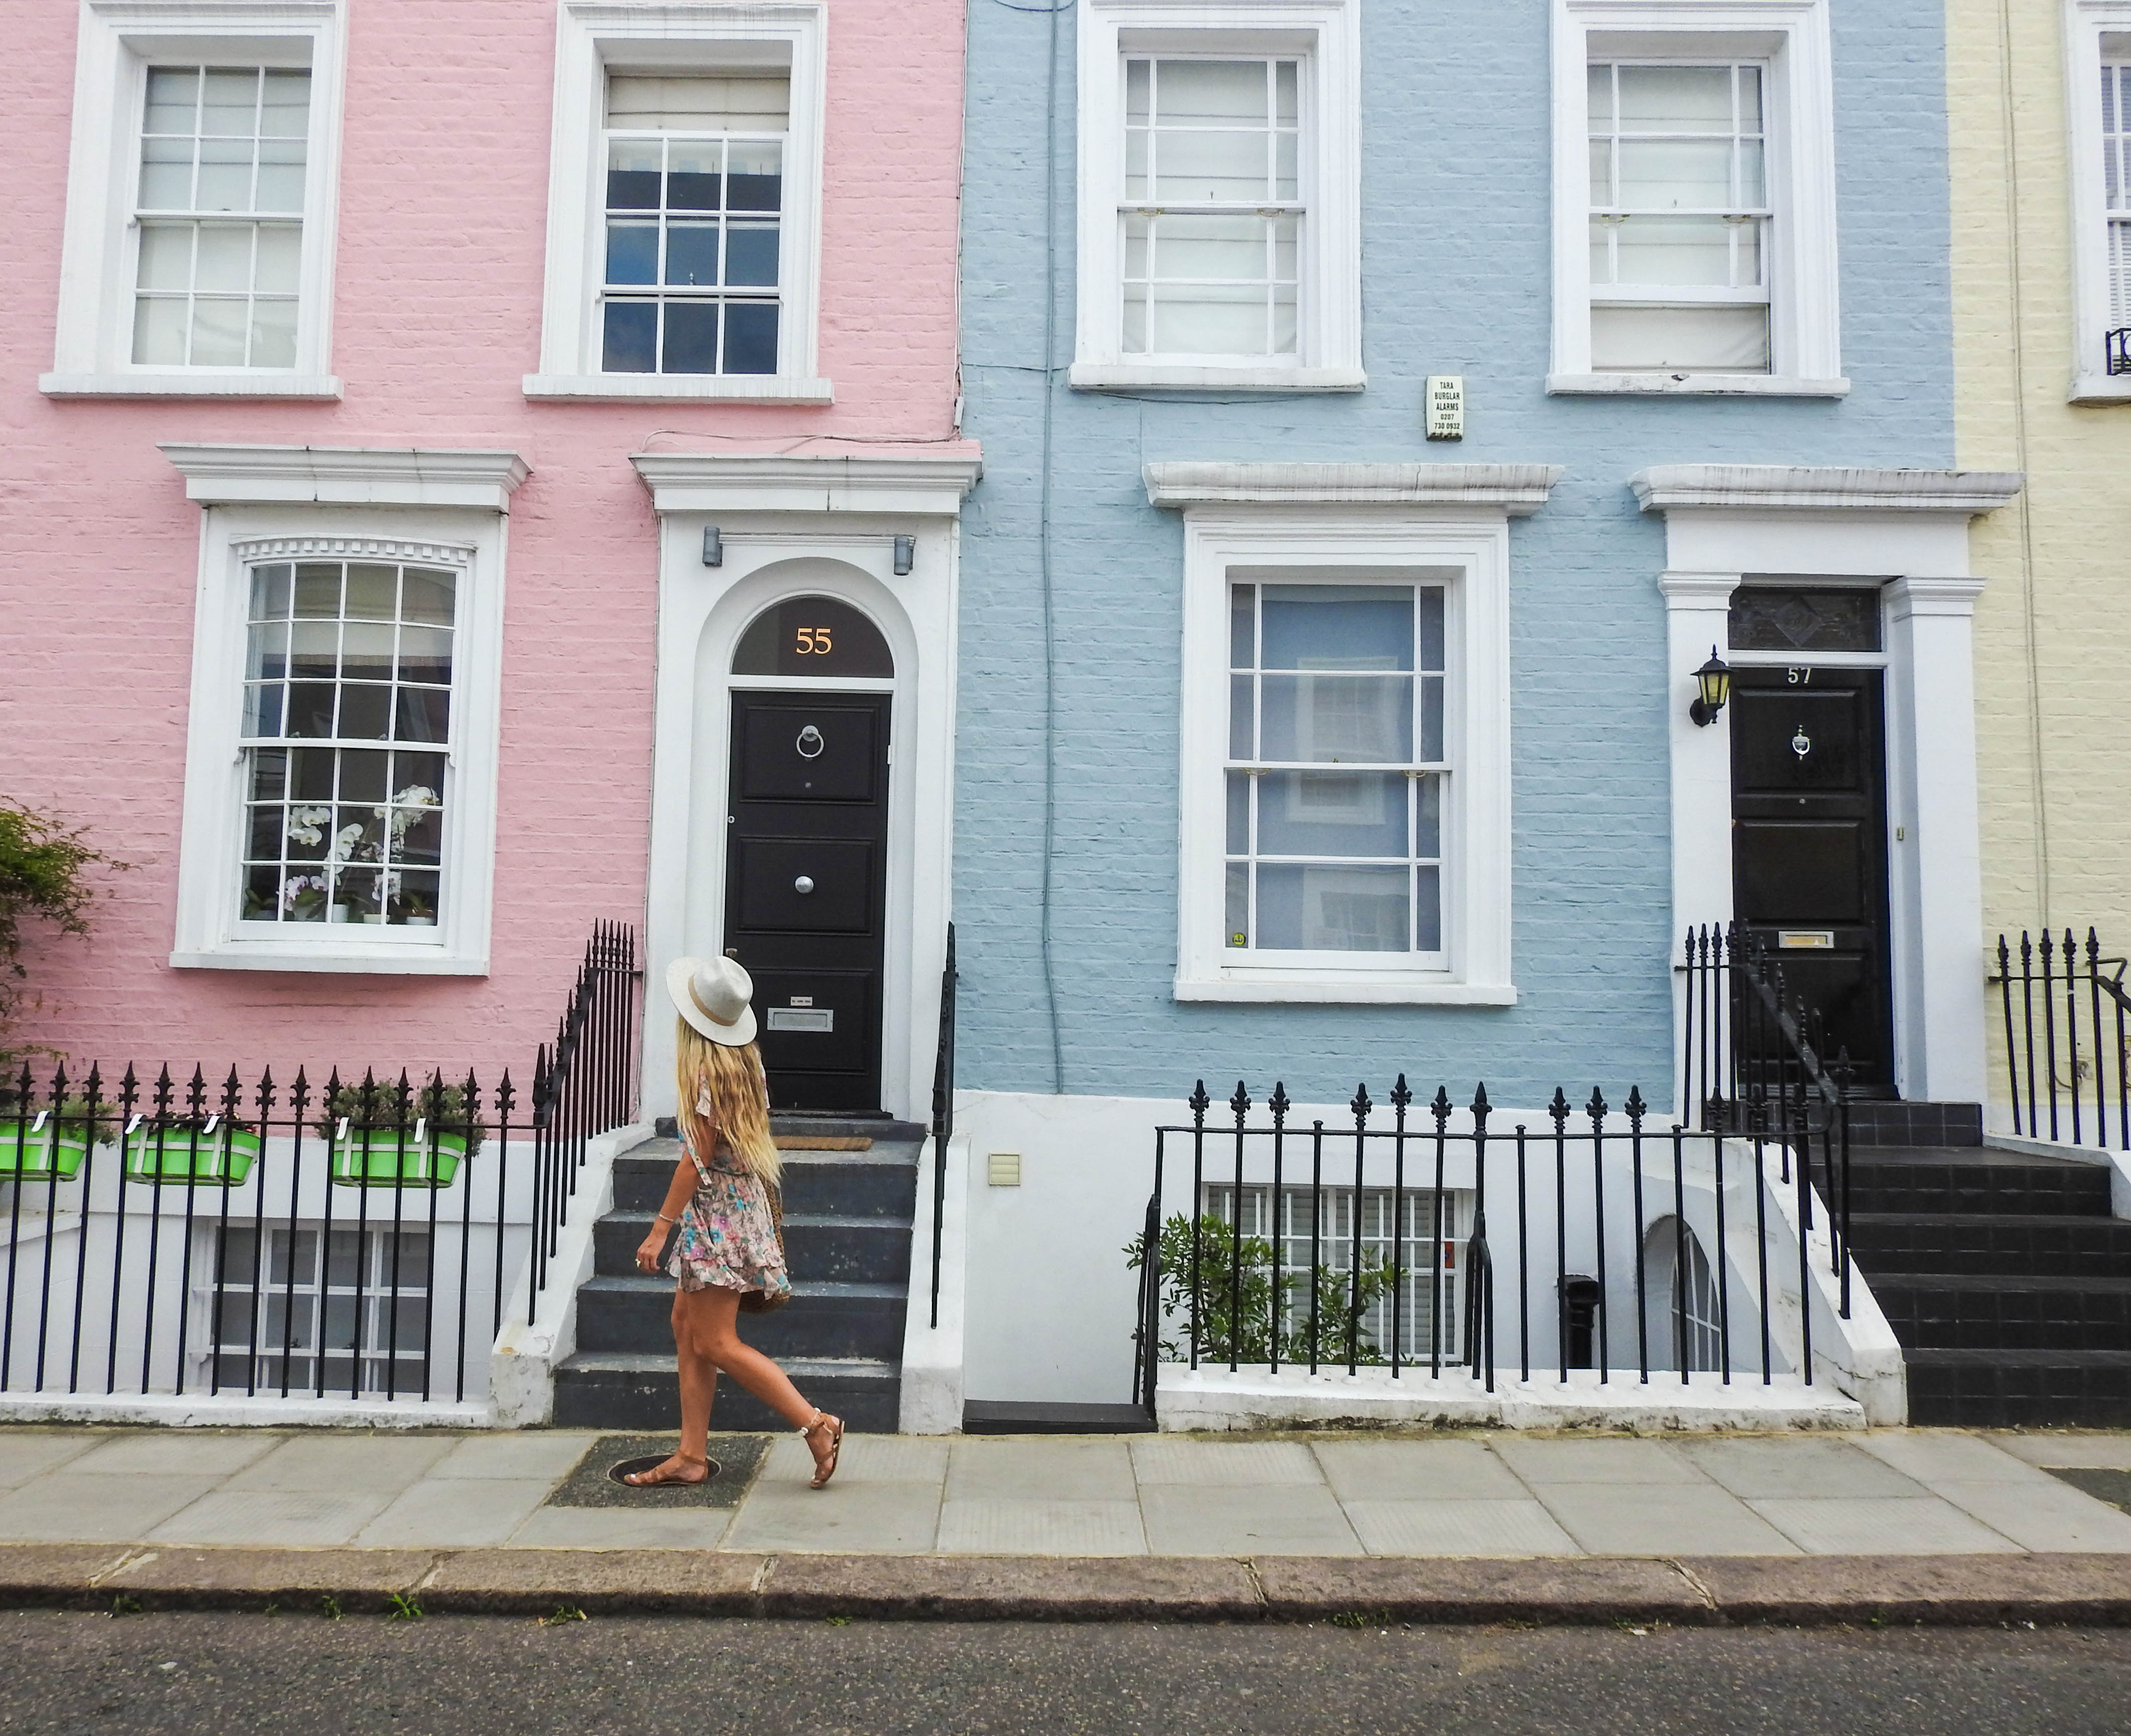 Wandering Notting Hill